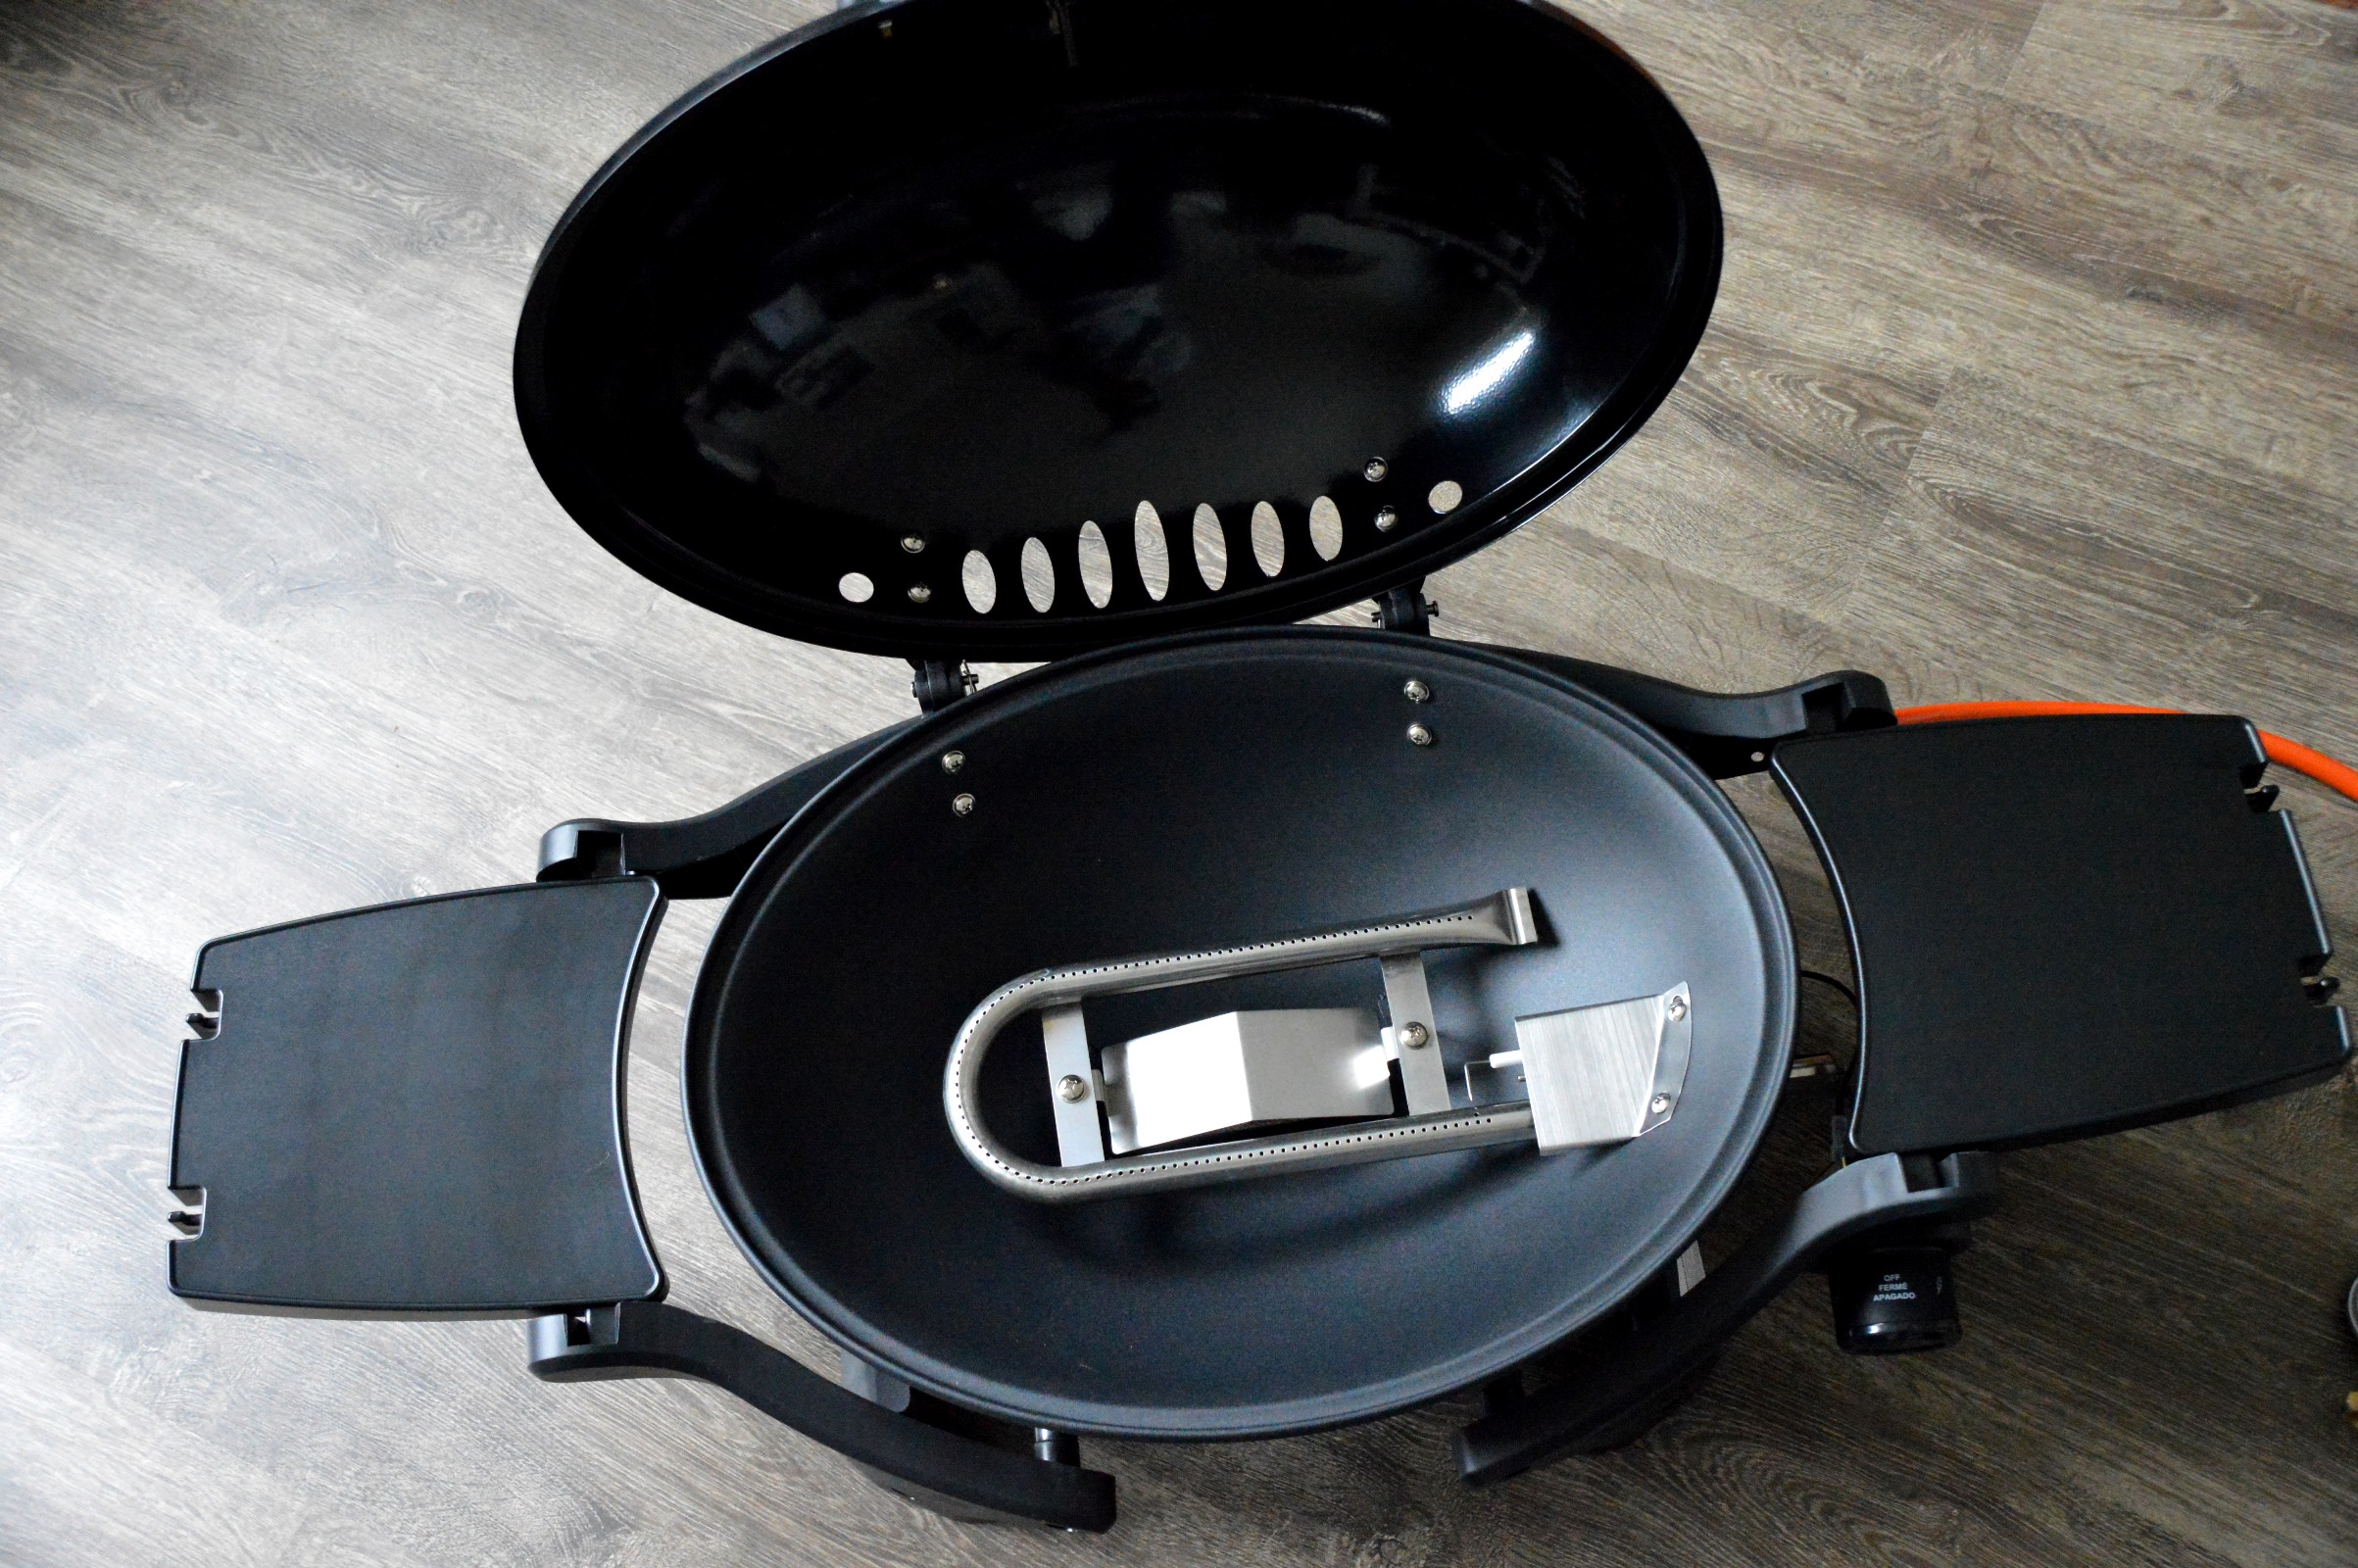 Infrarot Elektrogrill Test : Angegrillt gasgrill activa crosby im test bacon zum steak